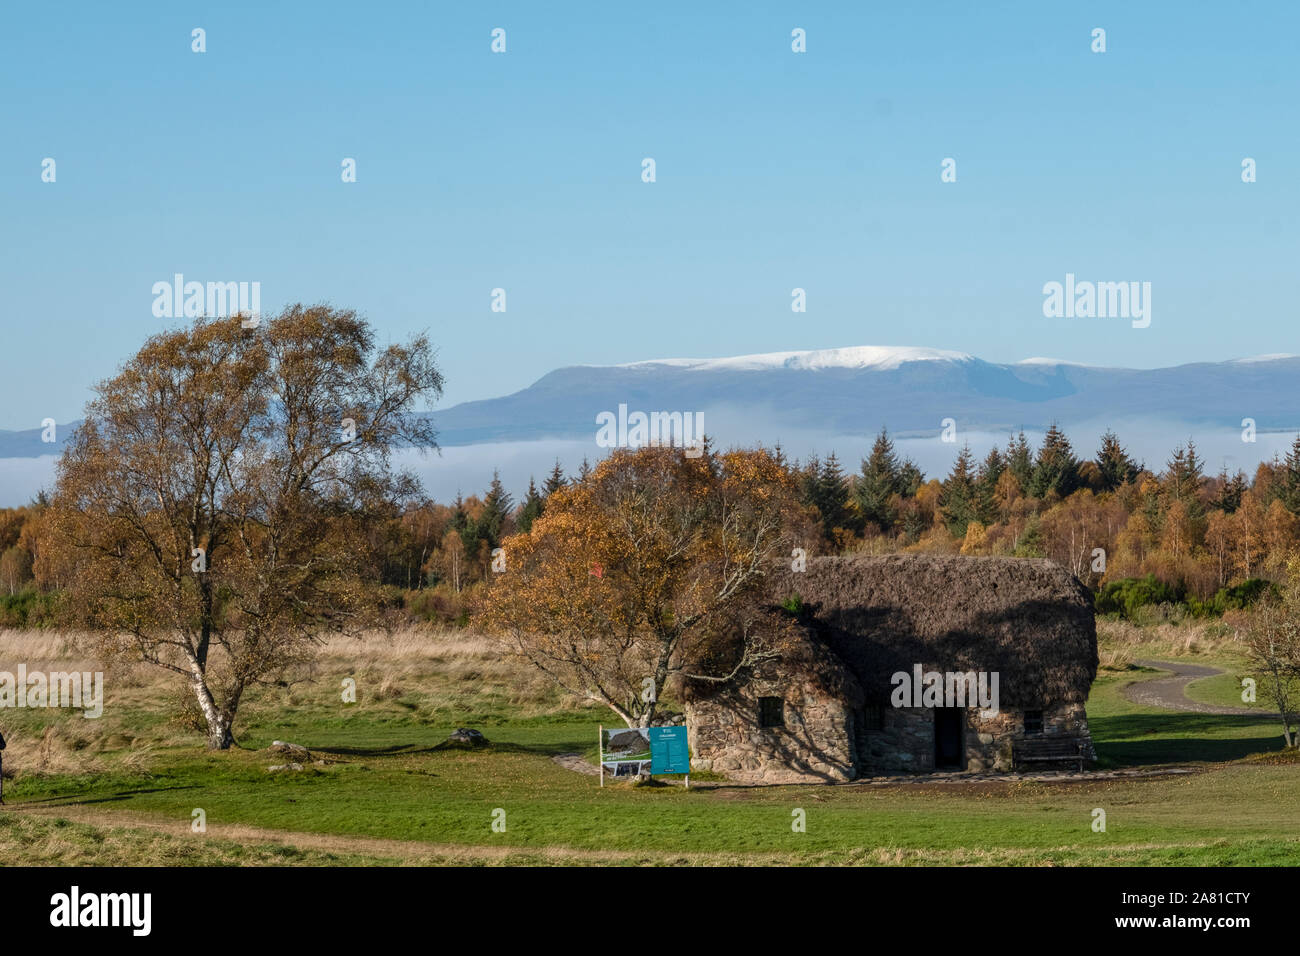 Leanach cottage, Culloden Moor. The cottage dates from the time of the battle and has been recently restored by the National Trust for Scotland. Stock Photo